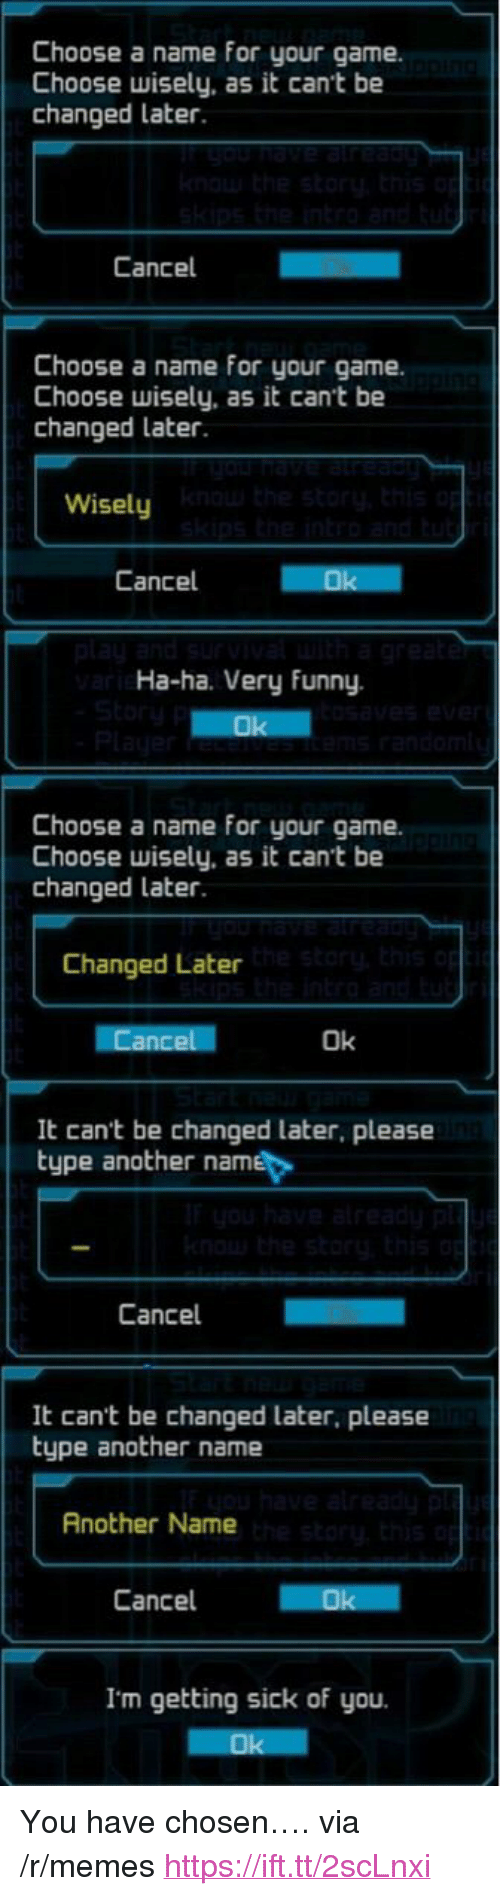 "Funny, Memes, and Game: Choose a name for your game.  Choose wisely, as it cant be  changed later.  Cancel  Choose a name for your game.  Choose wisely, as it cant be  changed later  Wisely  Cancel  Ha-ha. Very Funny.  Choose a name for your game.  Choose wisely, as it cant be  changed later  Changed Later  Ok  It can't be changed later, please  type another name  Cancel  It cant be changed later, please  type another name  Another Name  Cancel  Ok  I'm getting sick of you. <p>You have chosen…. via /r/memes <a href=""https://ift.tt/2scLnxi"">https://ift.tt/2scLnxi</a></p>"